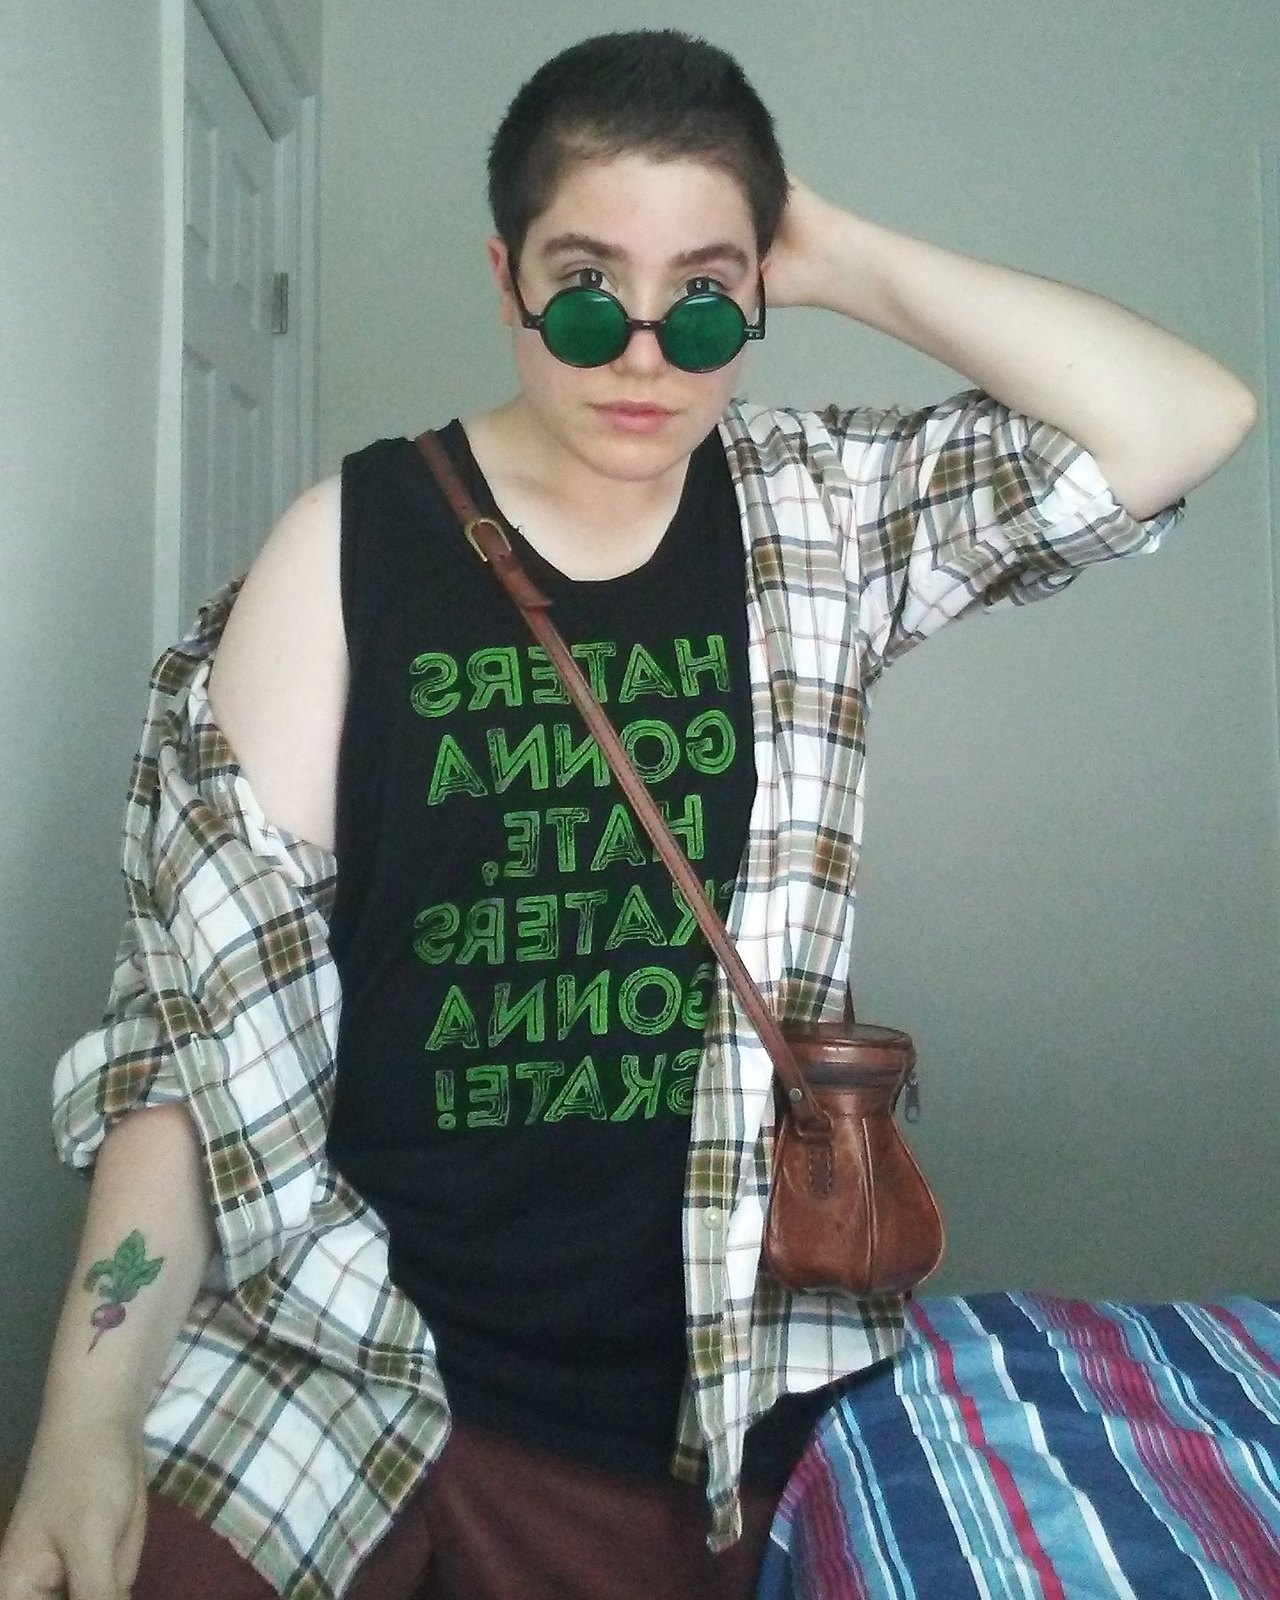 """Shirt reads: """"Hater gonna hate, Skaters gonna skate!"""" (Via  the-snazzy-jazzy-pirate-ship.tumblr.com )"""